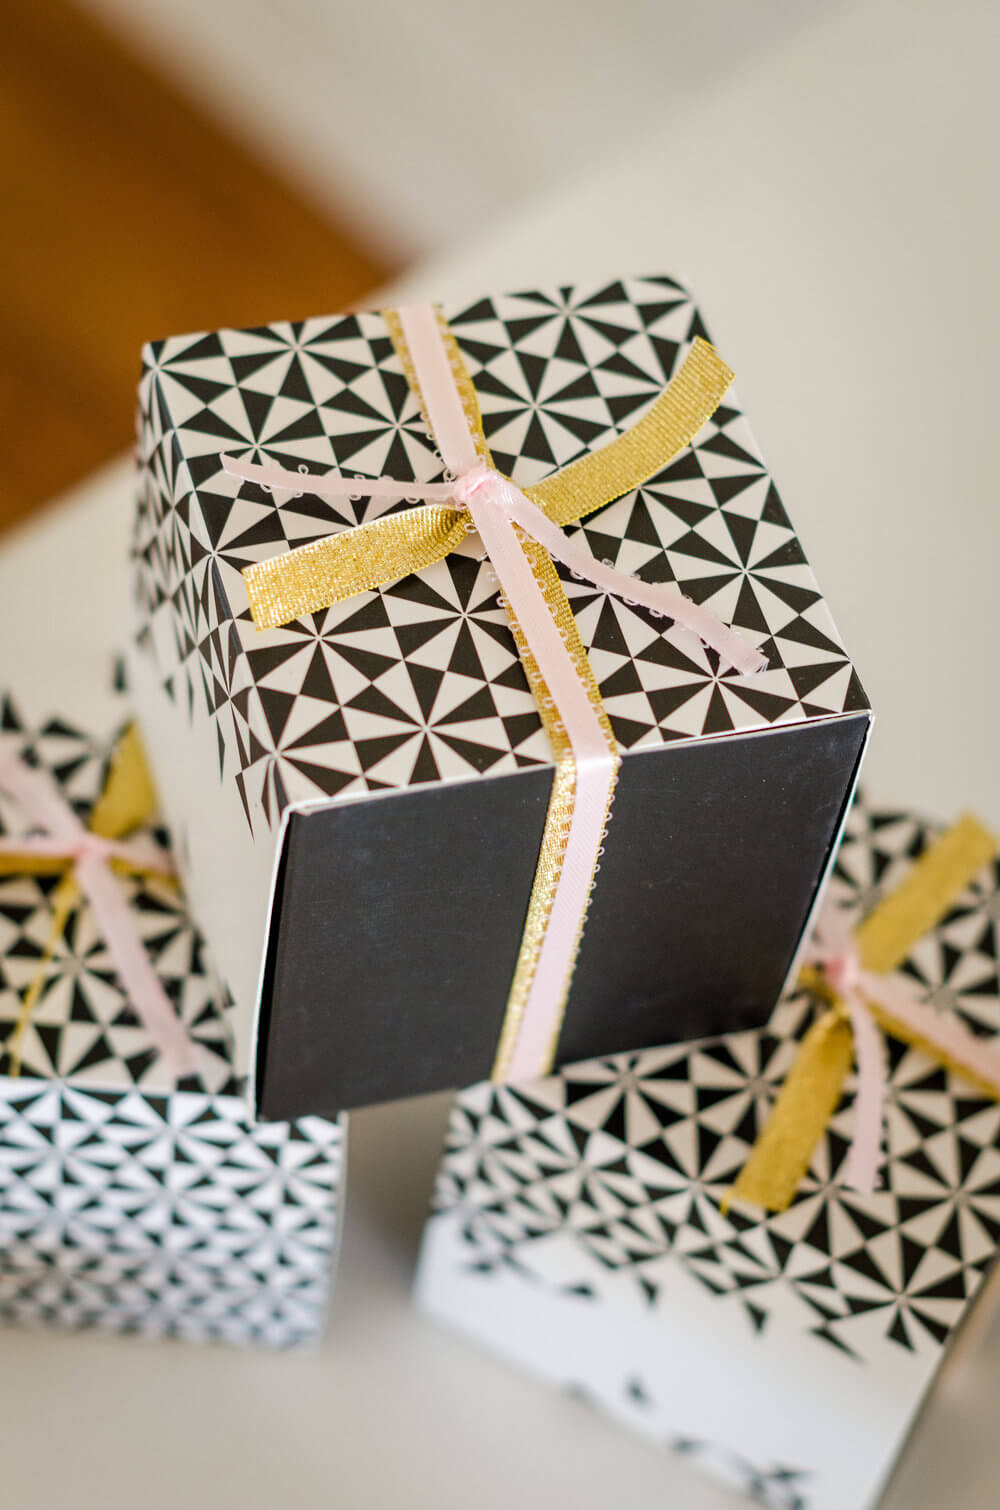 Gift Boxes for a Bridal or baby shower